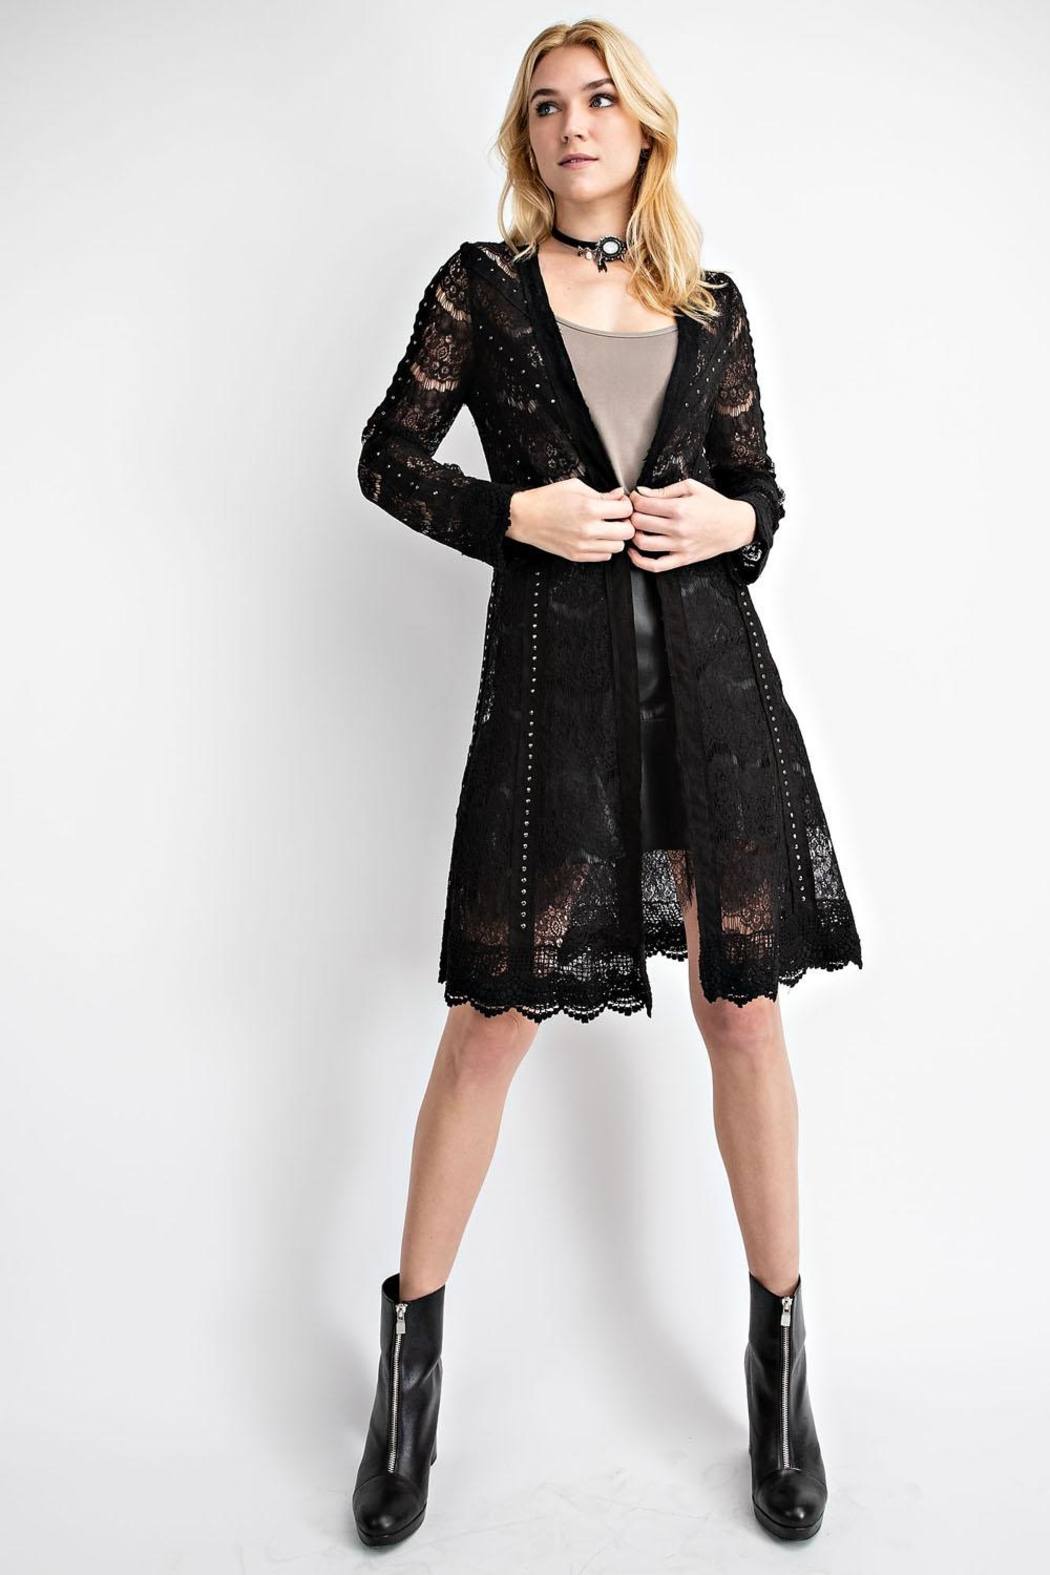 Vocal Apparel Lace Jacket With Studded Suede Details - Main Image